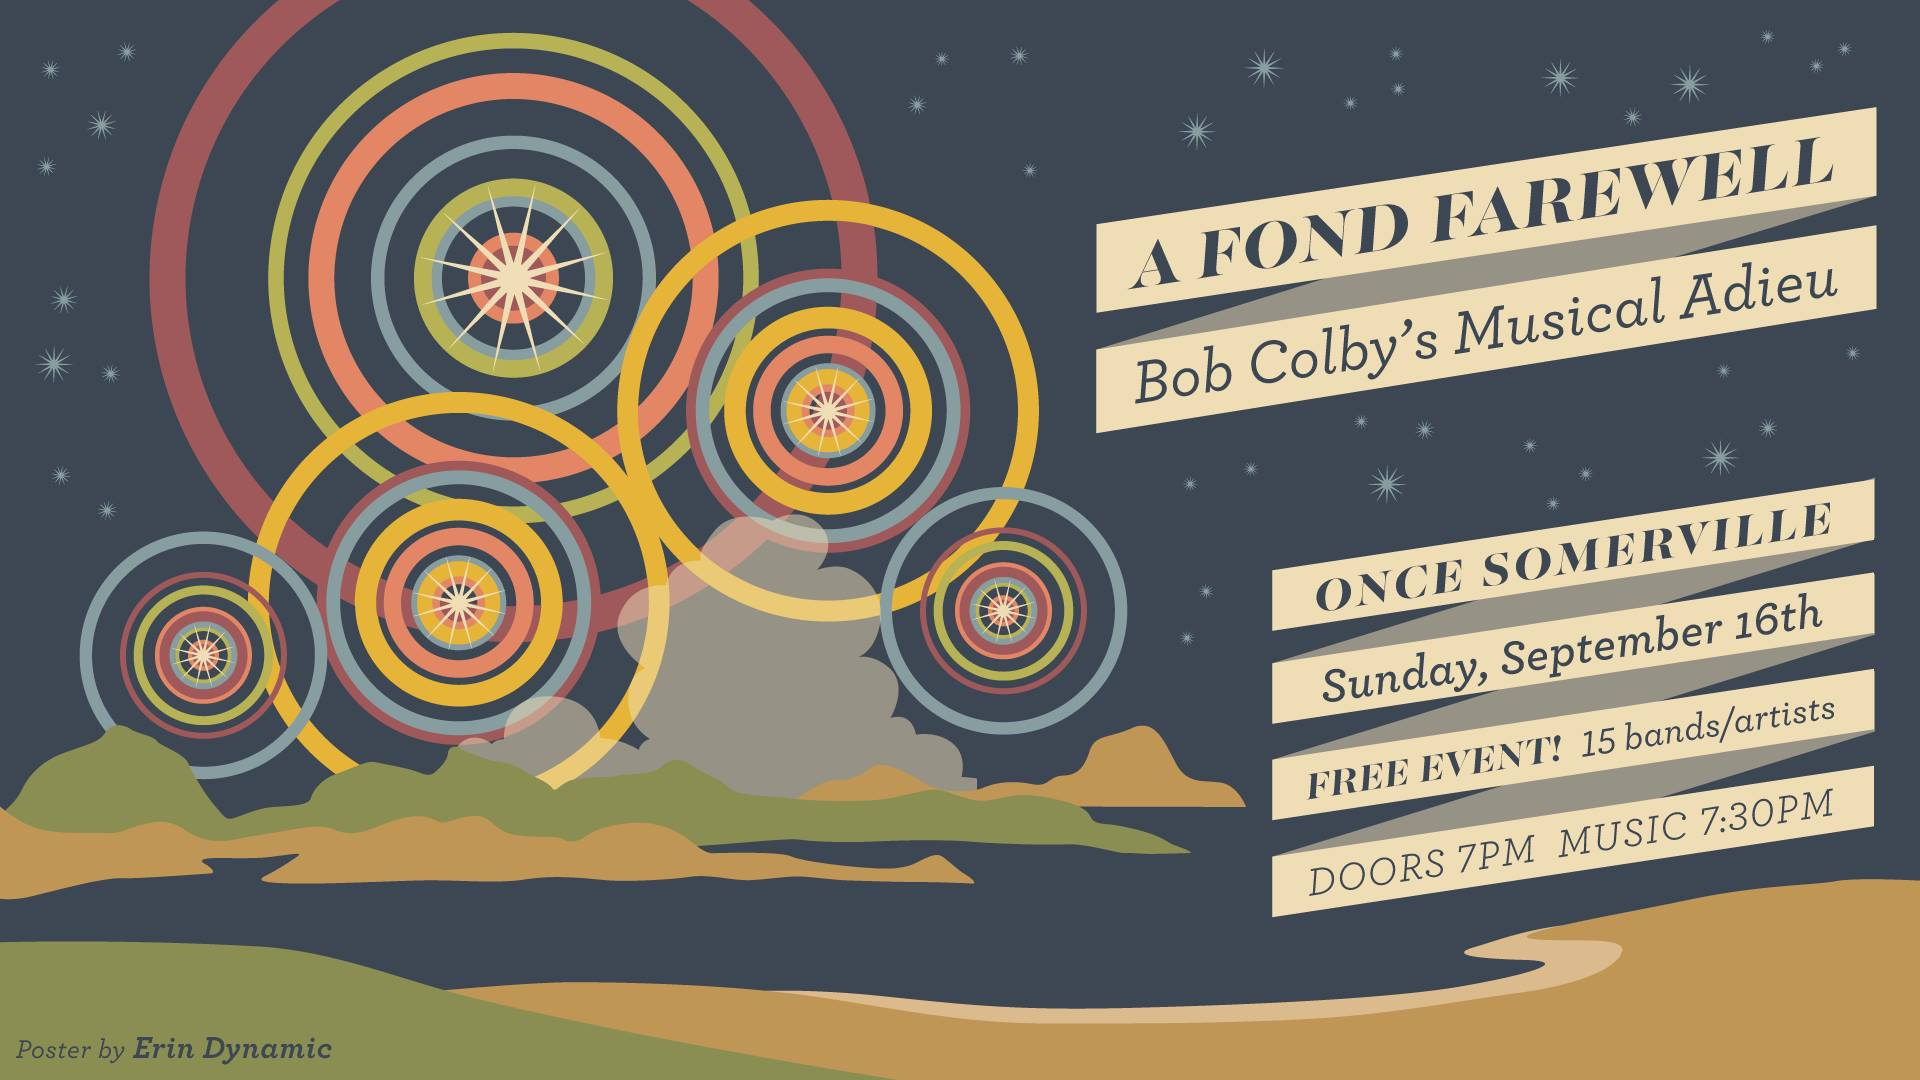 Watch / Listen – Bob Colby's Musical Adieu